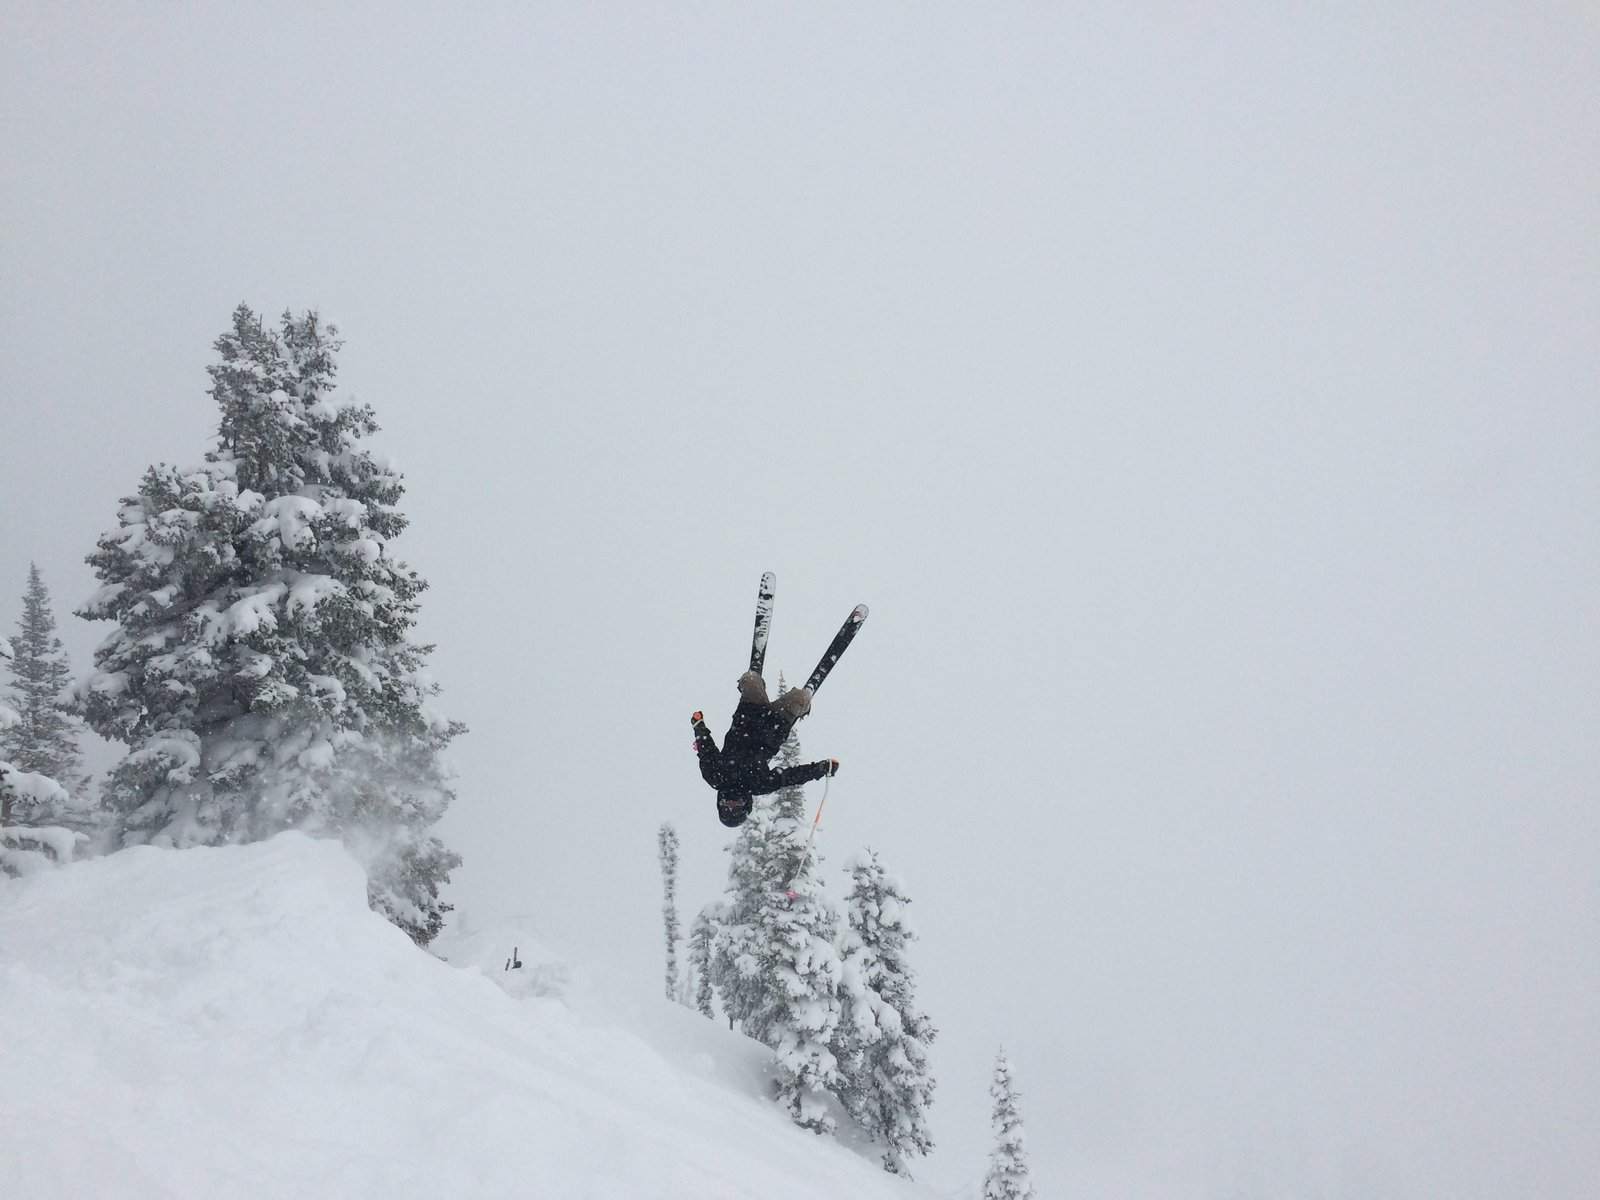 Flippin out at Alta